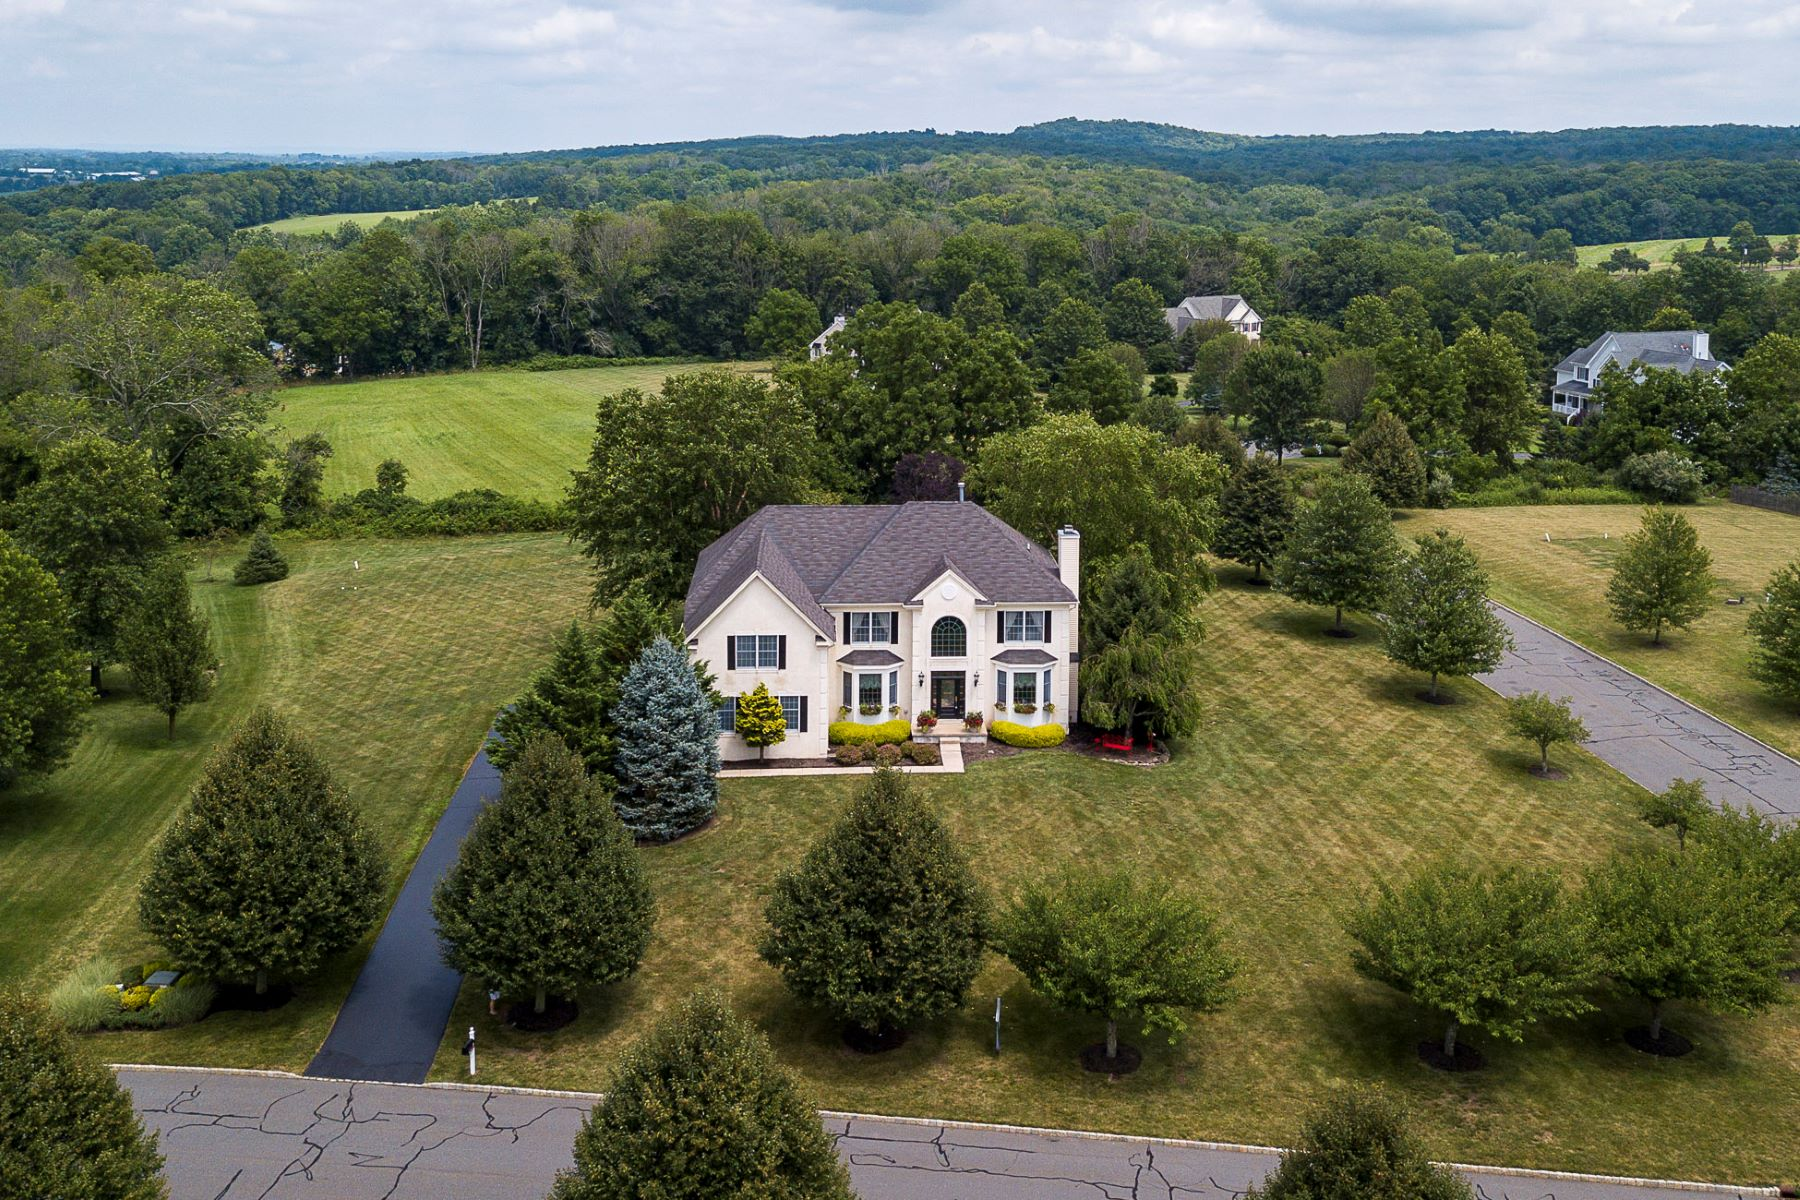 Additional photo for property listing at As Seen In Design New Jersey Magazine 12 Steeple View Court, Lambertville, New Jersey 08530 United States